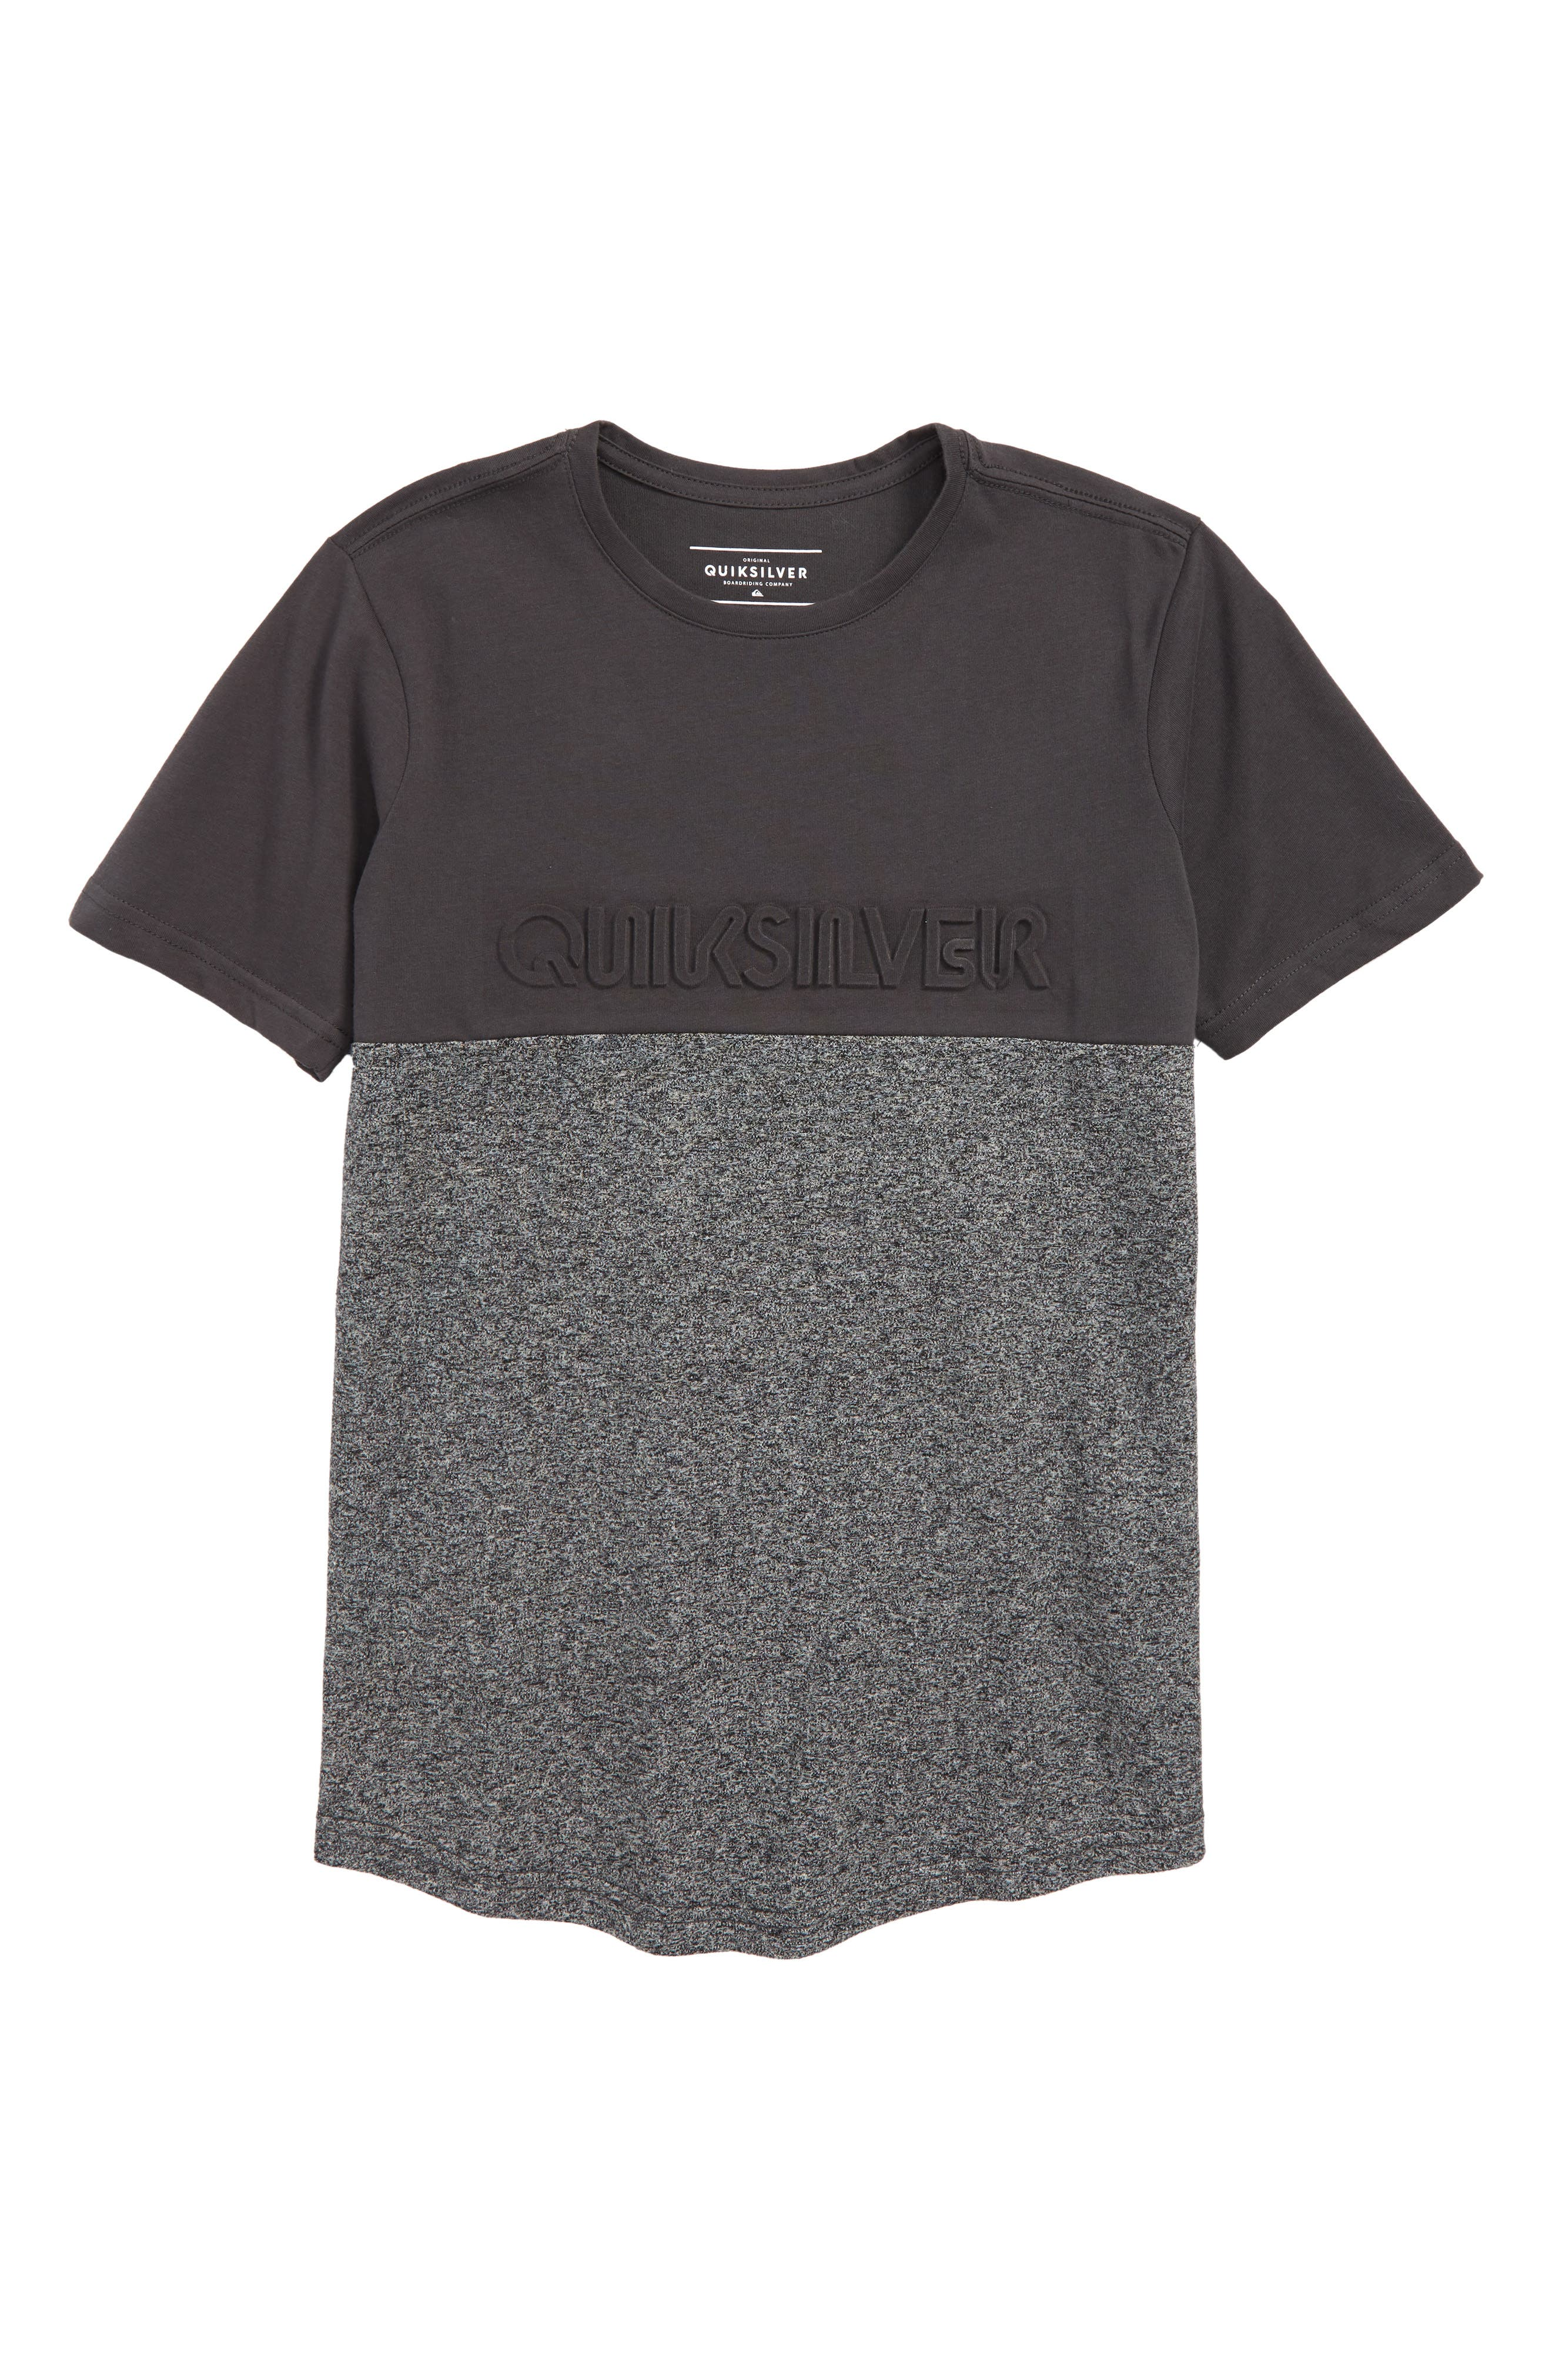 Kuju T-Shirt,                             Main thumbnail 1, color,                             TARMAC